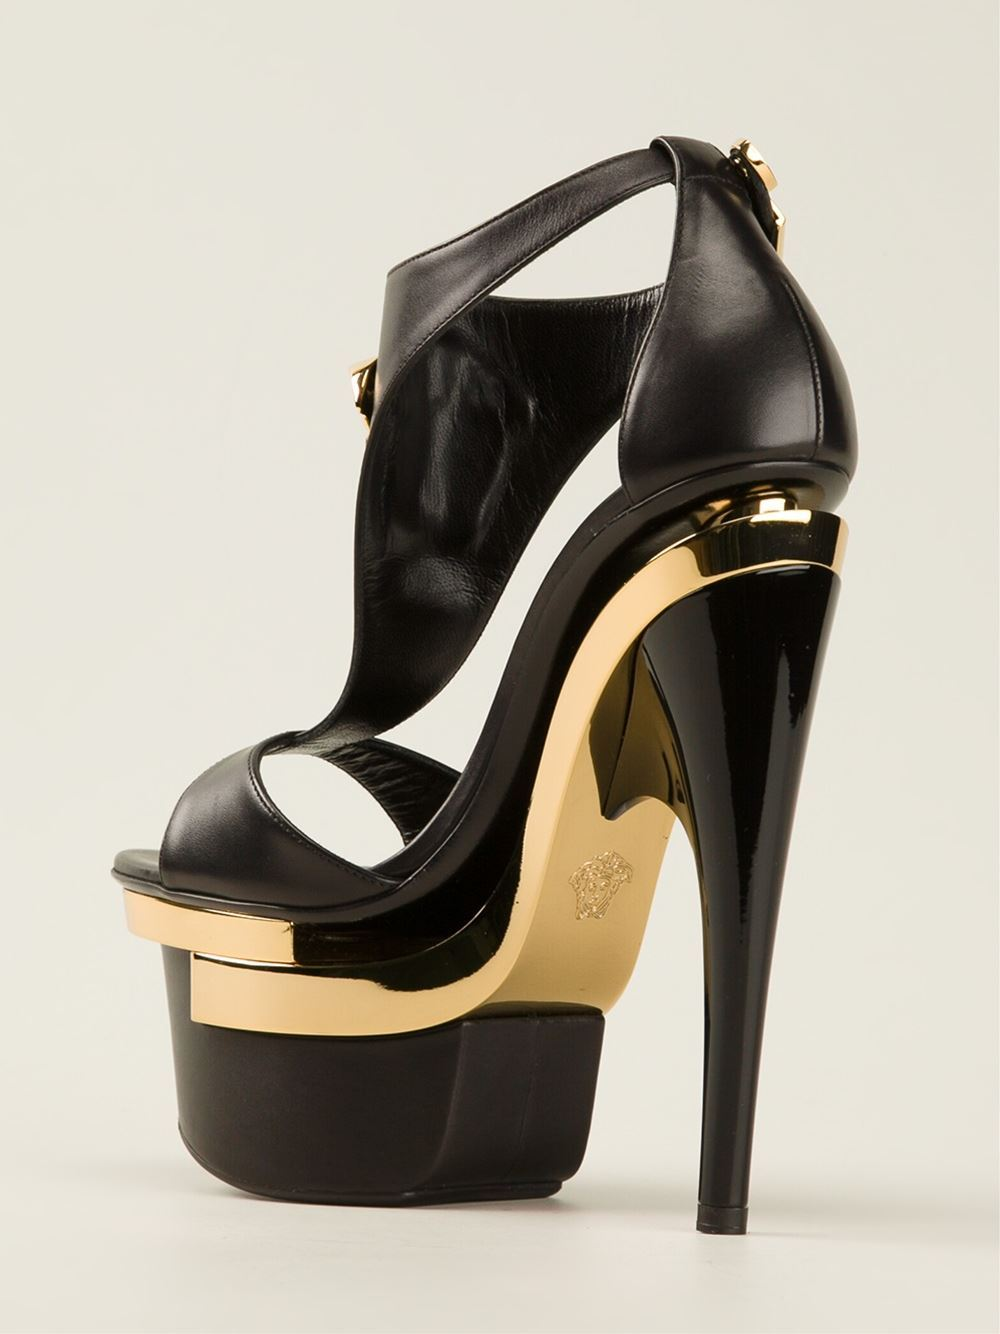 abebf5517f6 ERSACE Black Leather Triple Platform Shoes with Gold Medusa